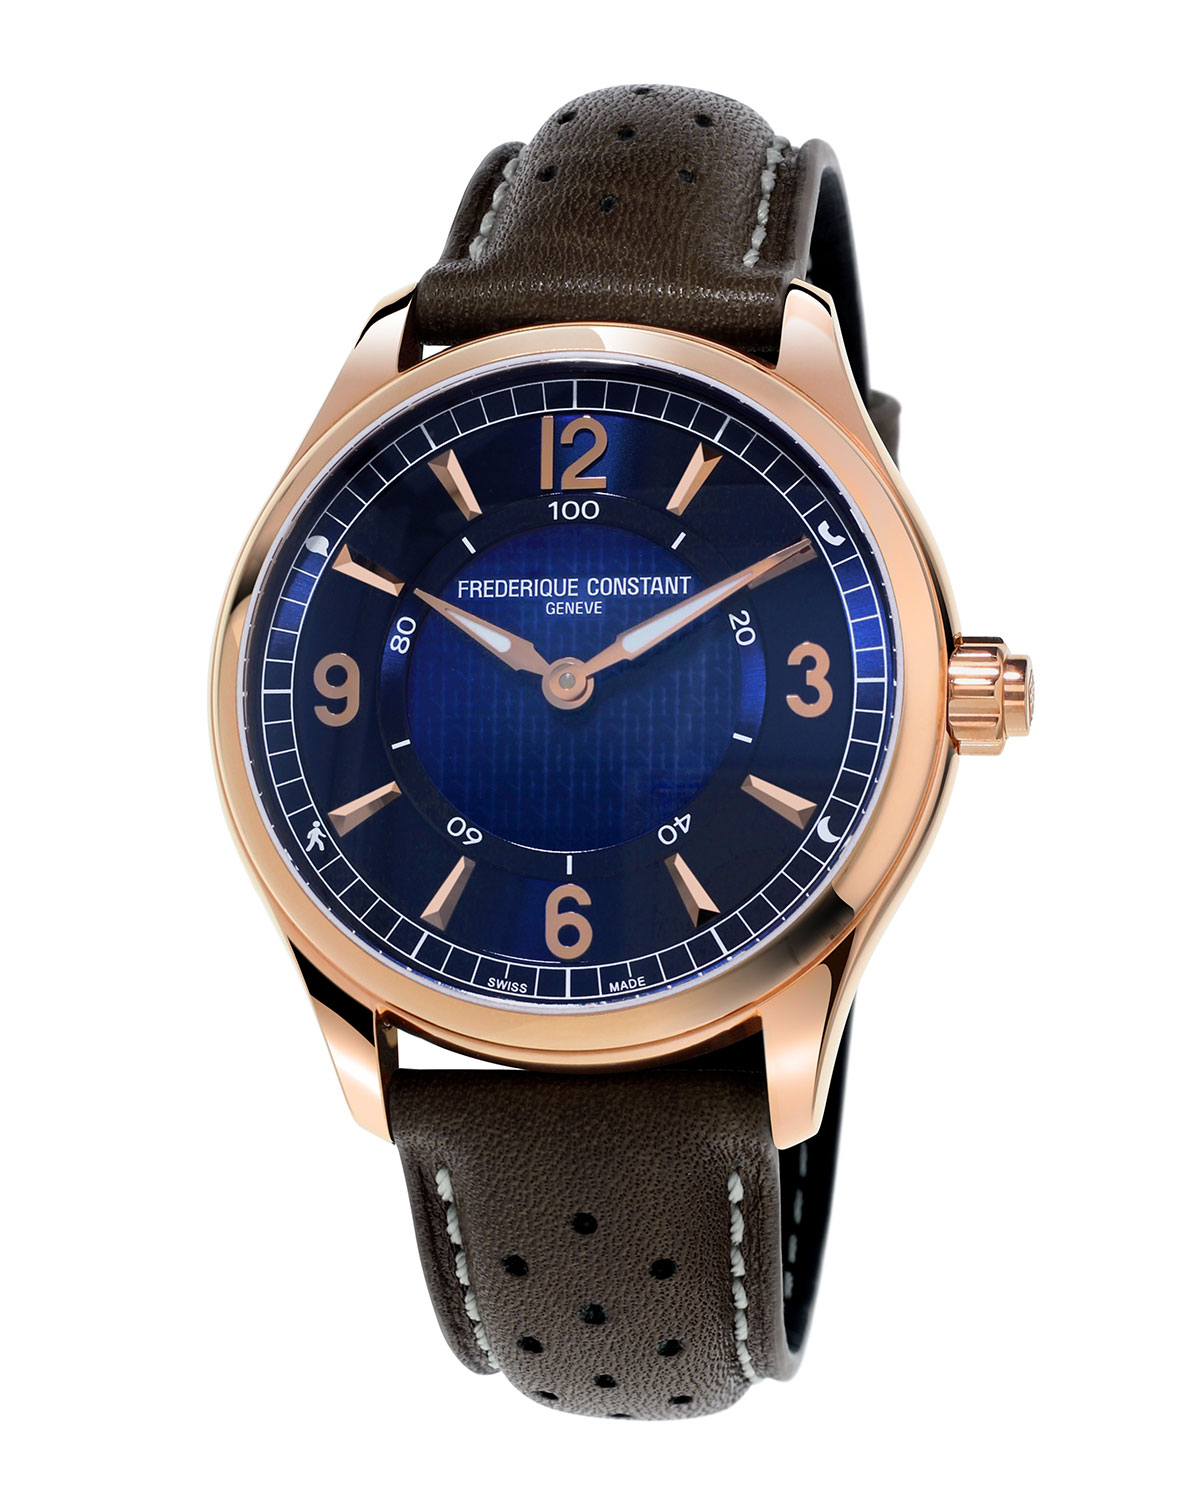 Frederique Constant 42mm Horological Smart Watch With Leather Strap,